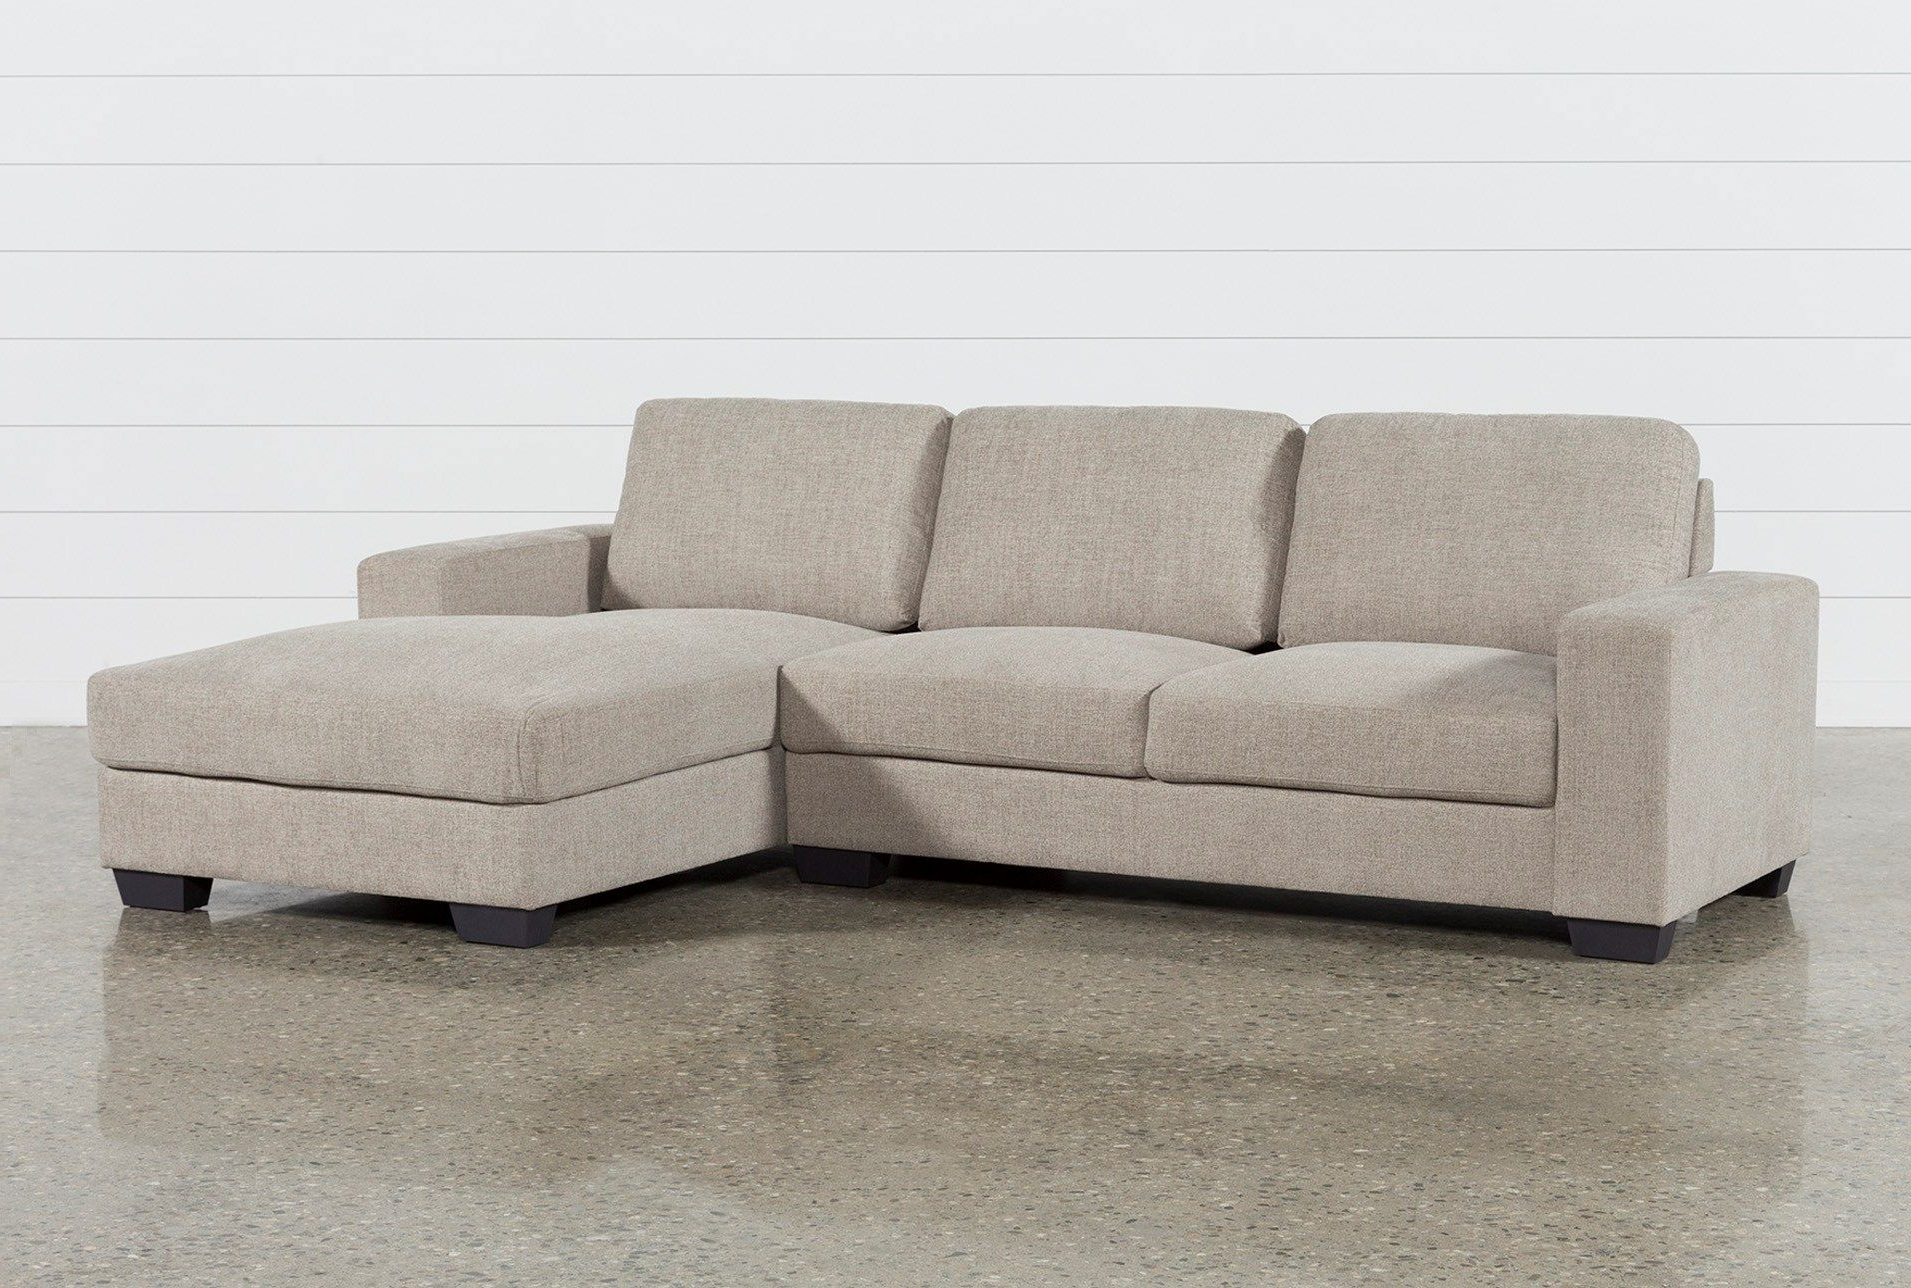 Jobs Oat 2 Piece Sectional With Right Facing Chaise In 2018 Regarding Recent Arrowmask 2 Piece Sectionals With Sleeper & Right Facing Chaise (View 2 of 20)